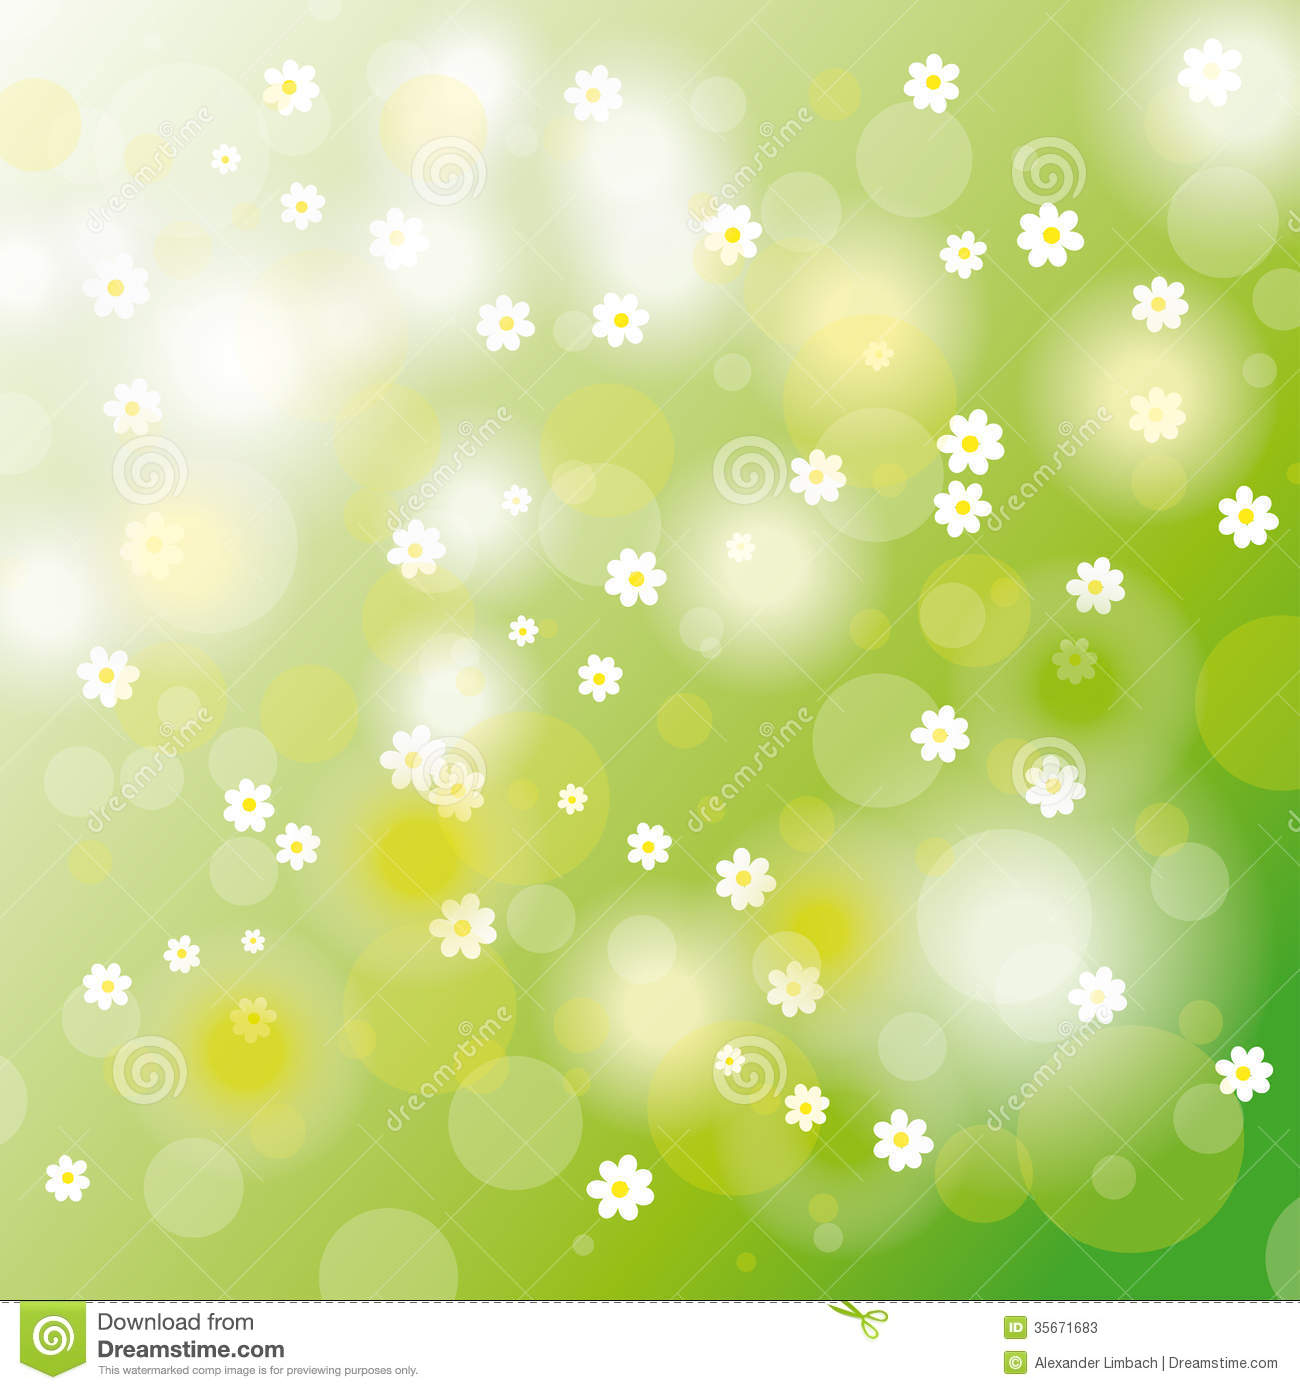 Infographic design on the grey background eps 10 vector file - Easter Card Background White Flowers Stock Photos Image